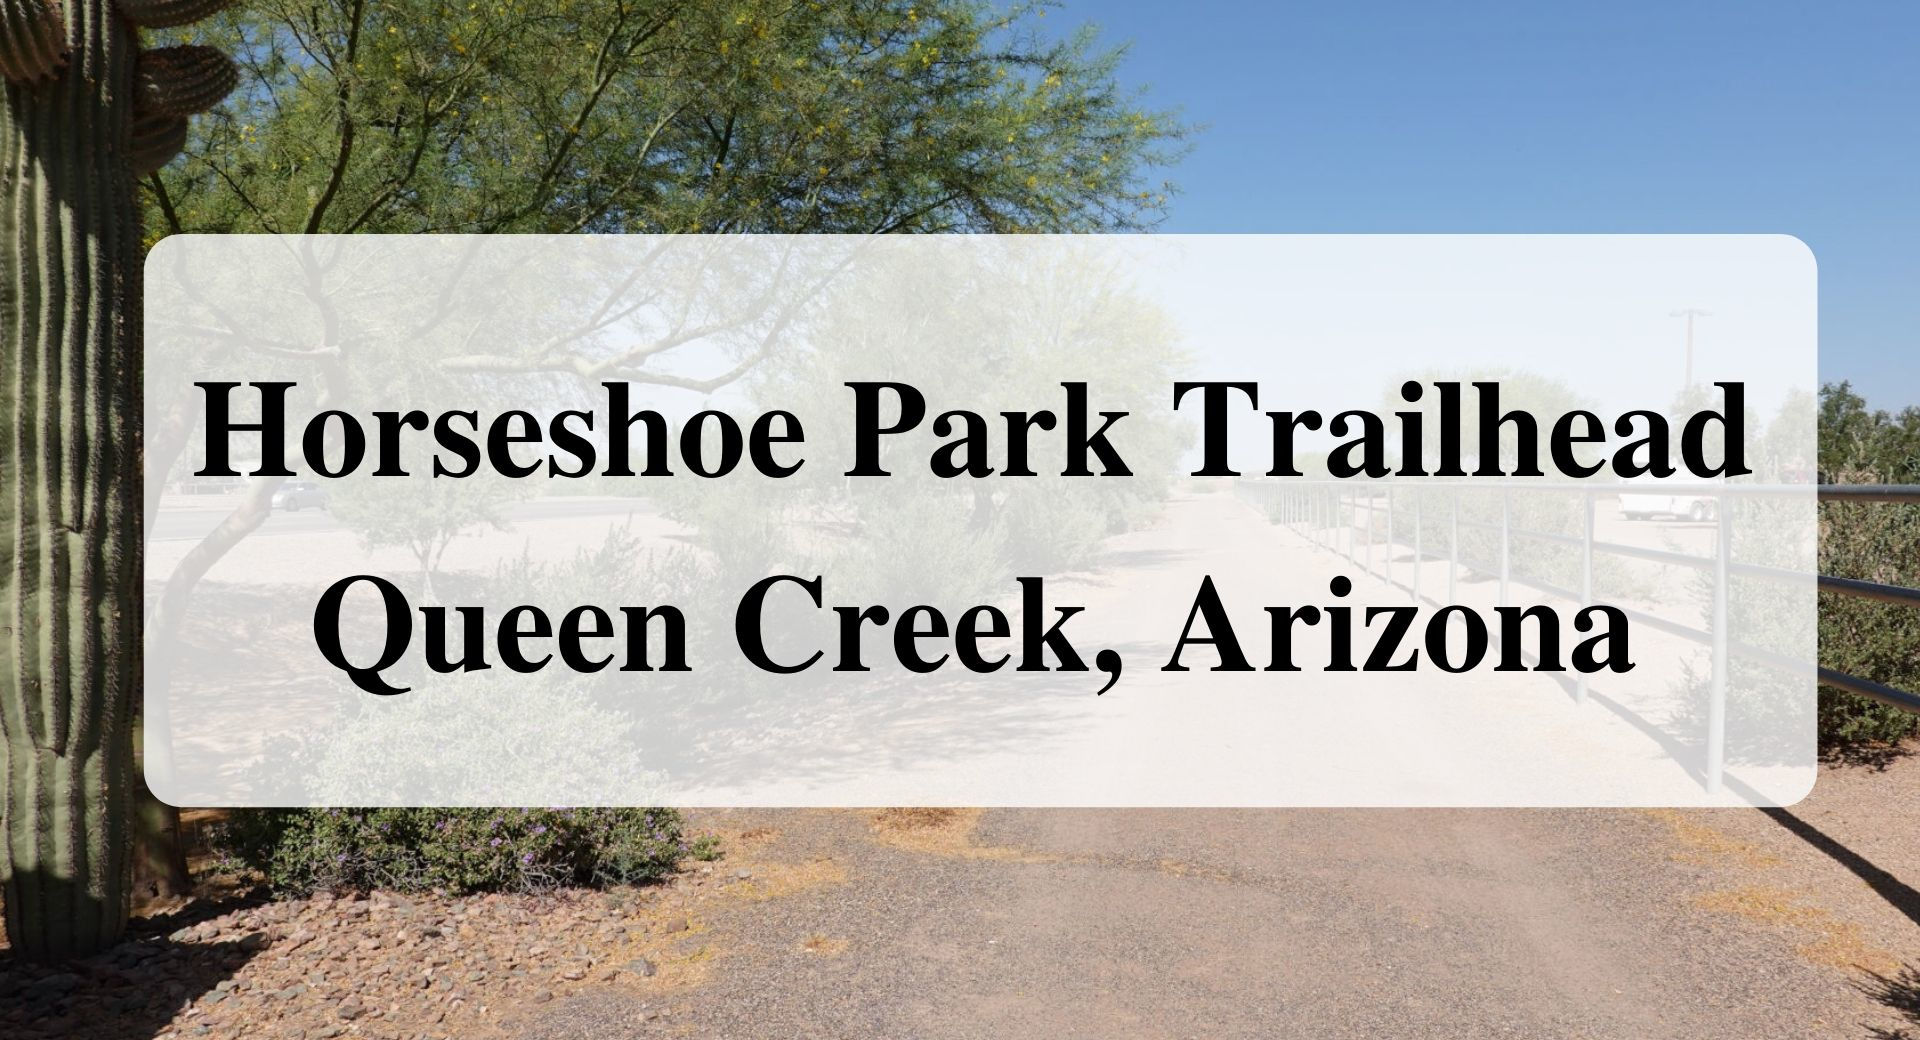 Horseshoe_Park_Trailhead_Queen_Creek_Arizona_forever_sabbatical